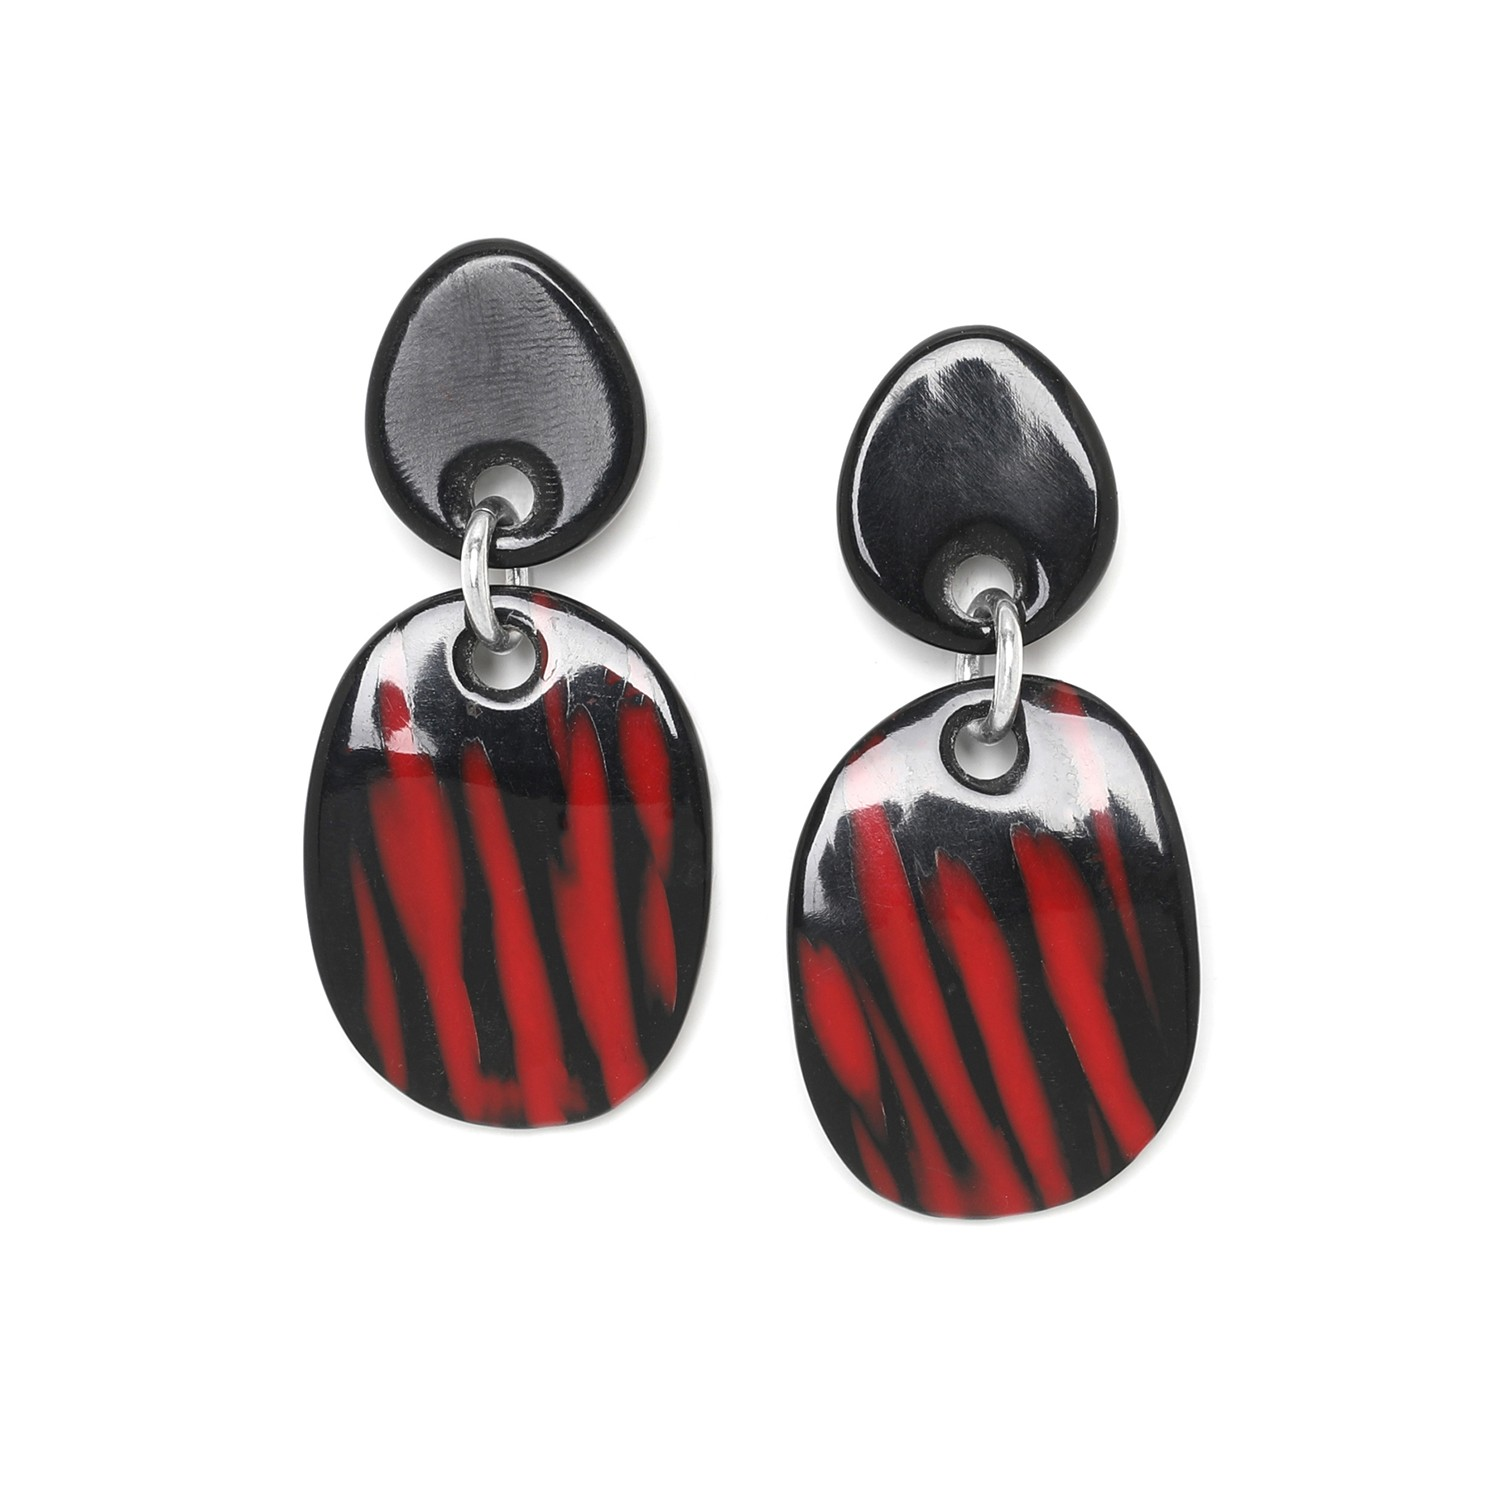 MAGMA boucles d'oreilles ovales